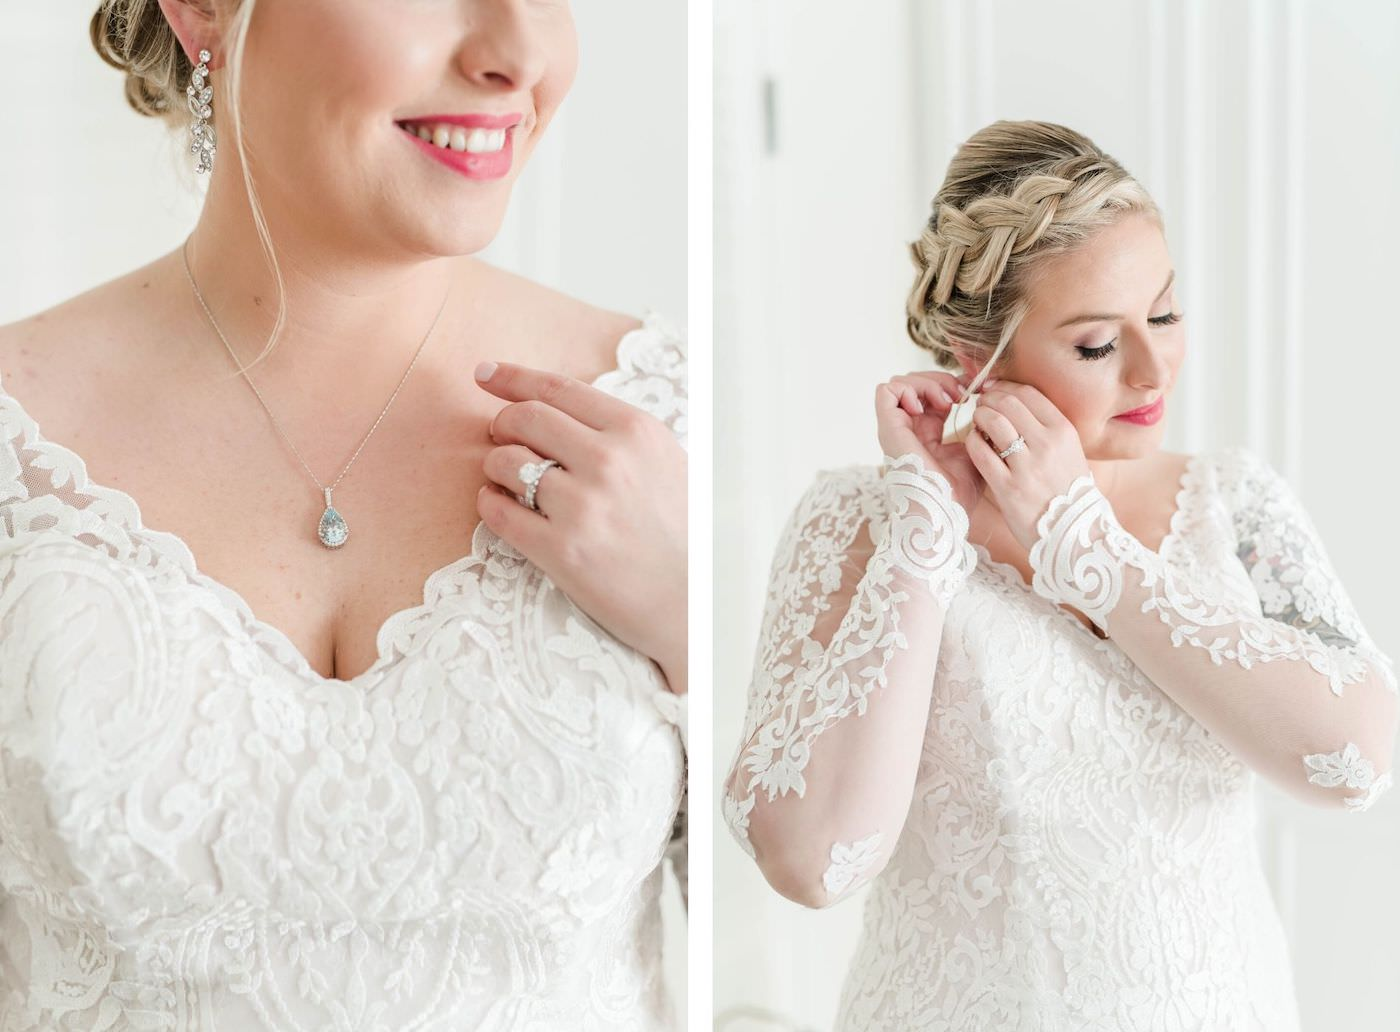 Ivory Lace Long Sleeve Bridal Gown With V Neck   Side Braid Bridal Hairstyle   Femme Akoi Beauty Studio